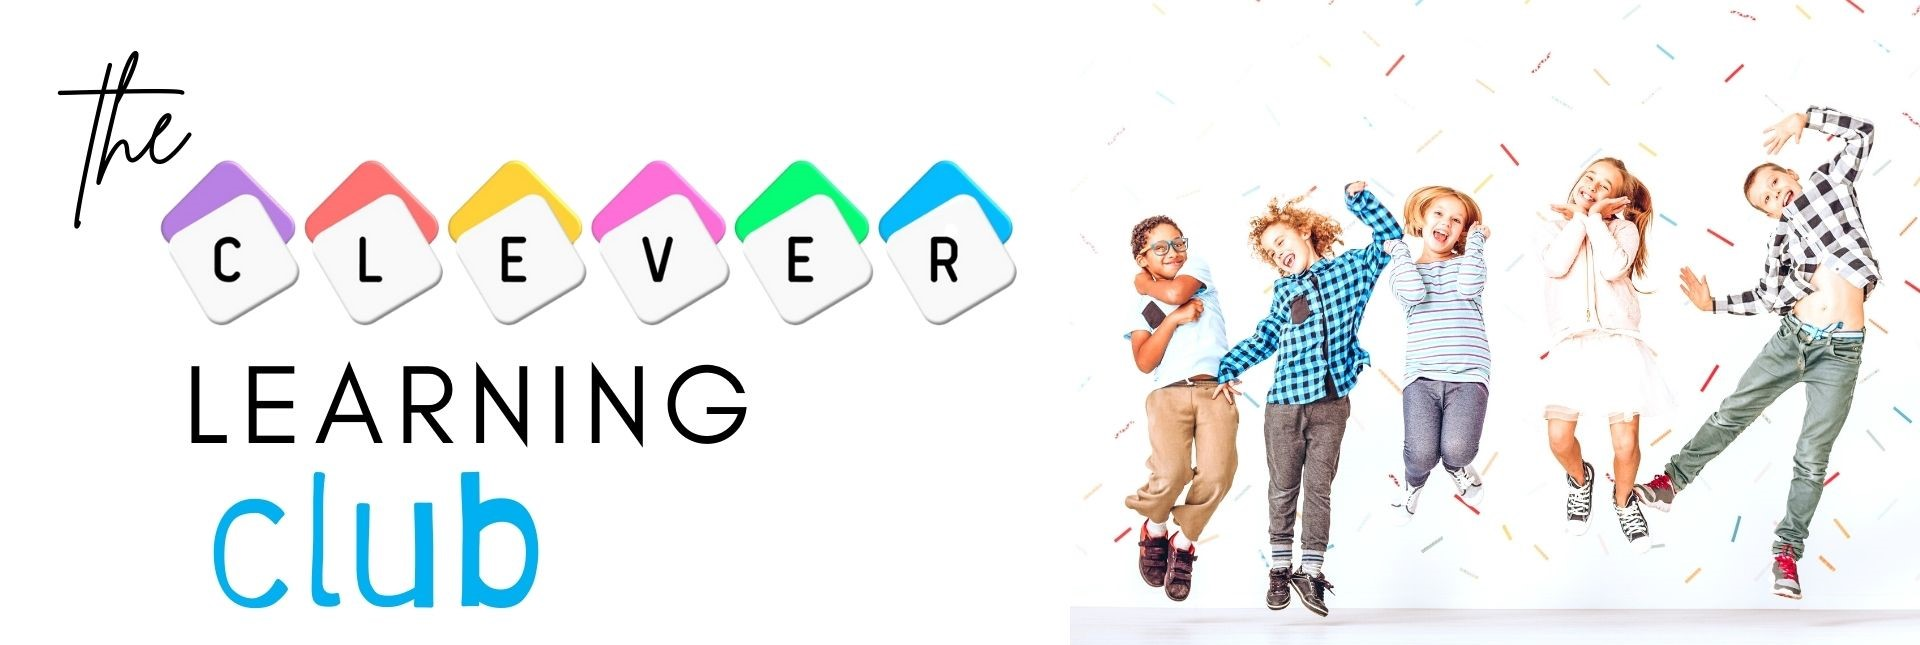 clever learning club